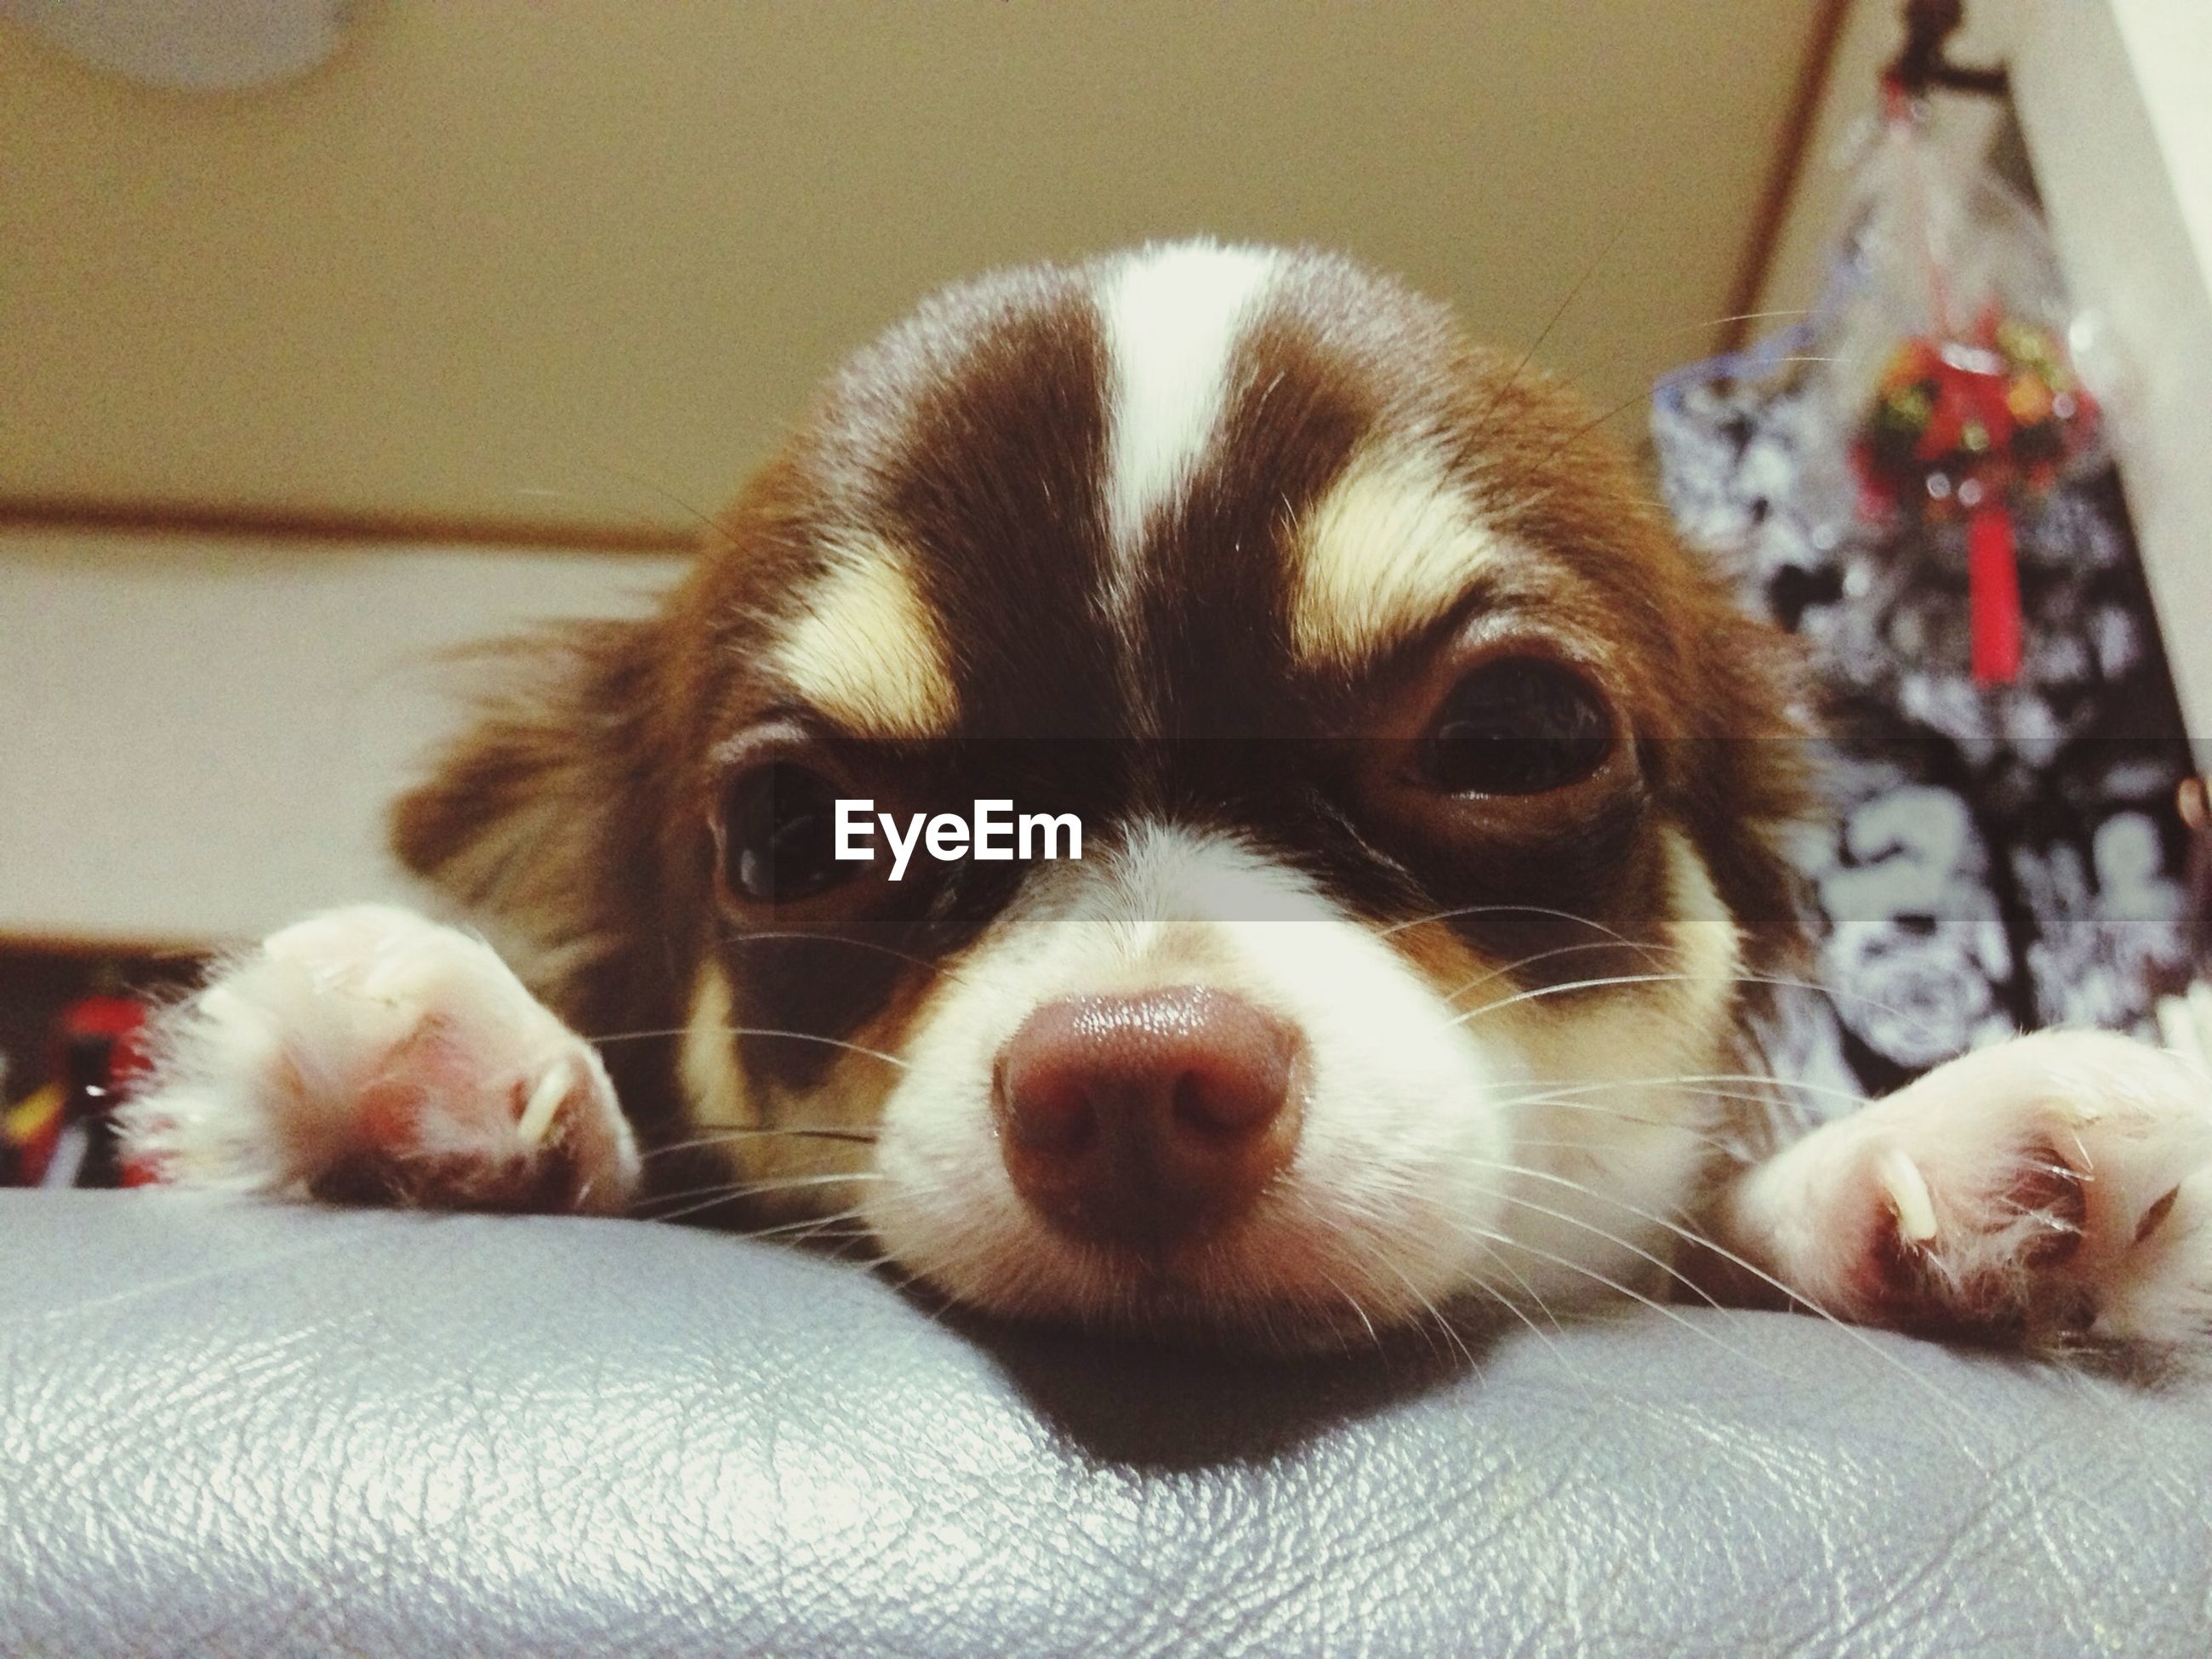 pets, animal themes, domestic animals, indoors, one animal, dog, mammal, portrait, close-up, looking at camera, home interior, relaxation, animal head, bed, resting, animal body part, lying down, cute, sofa, home